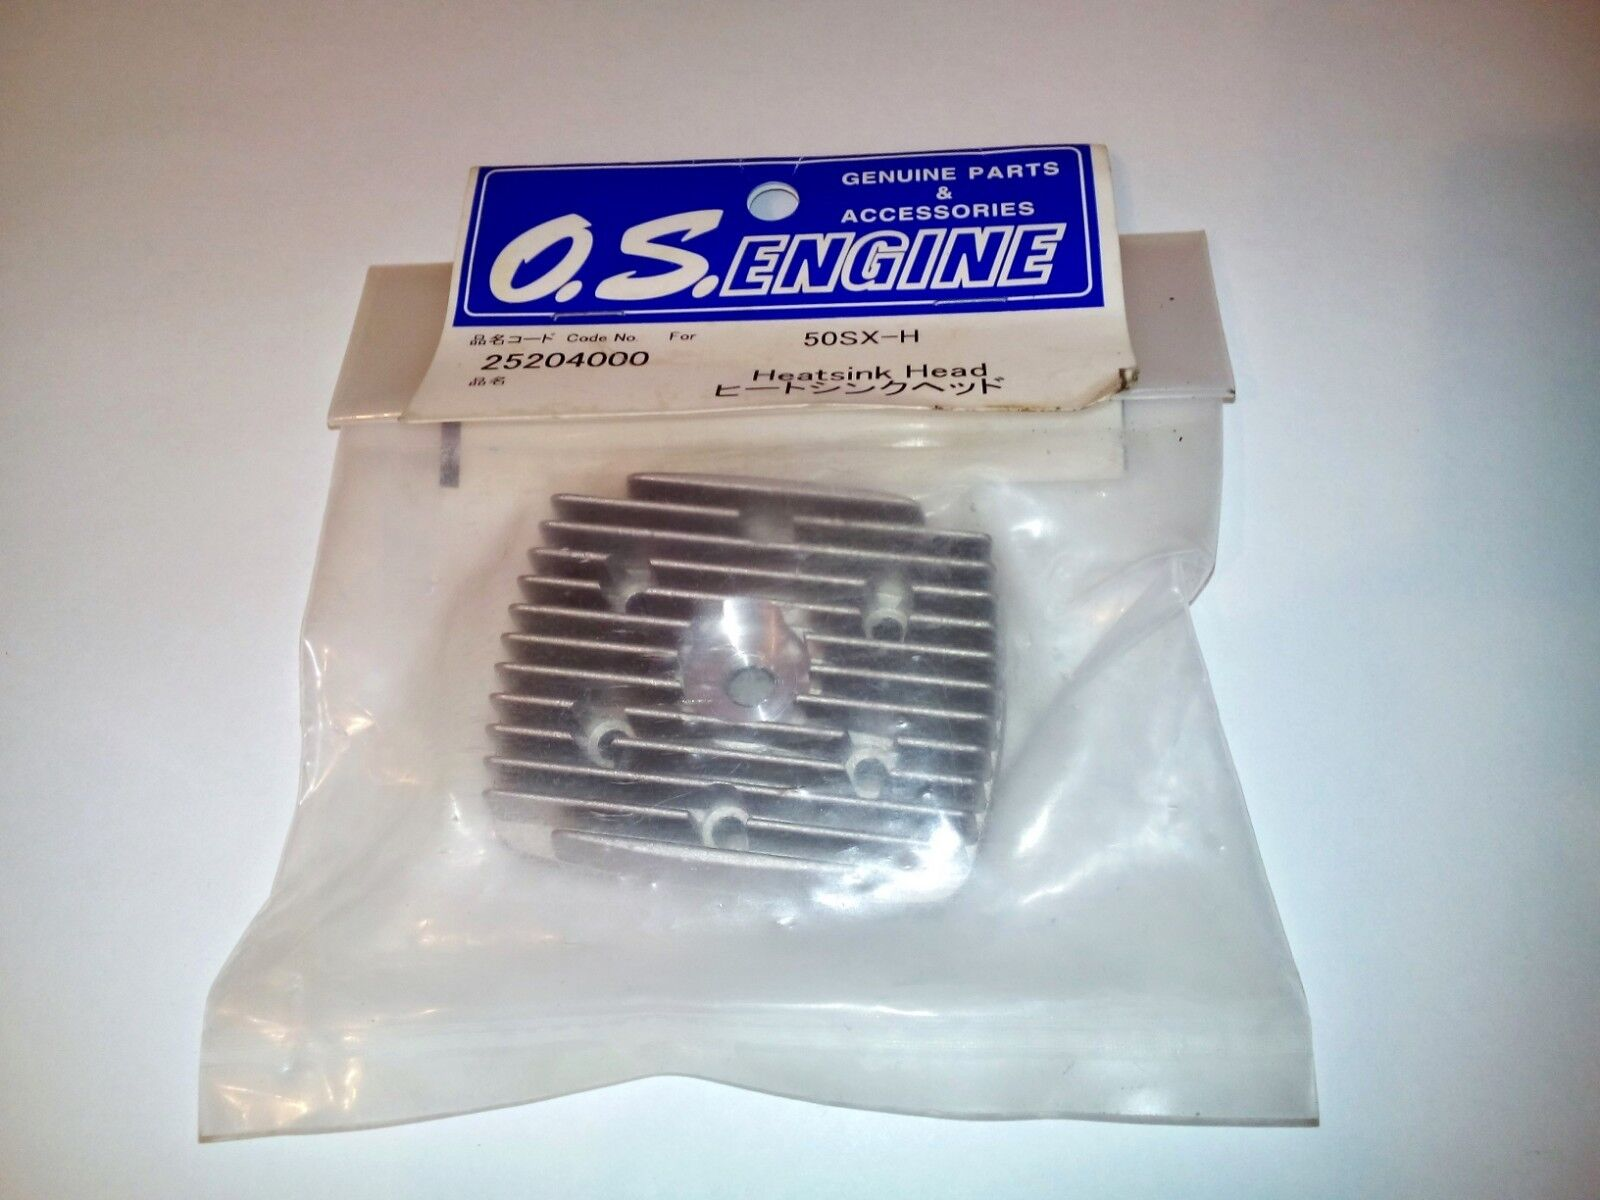 New  O.S. Heat Sink Head for 50SX-H Engine 25204000